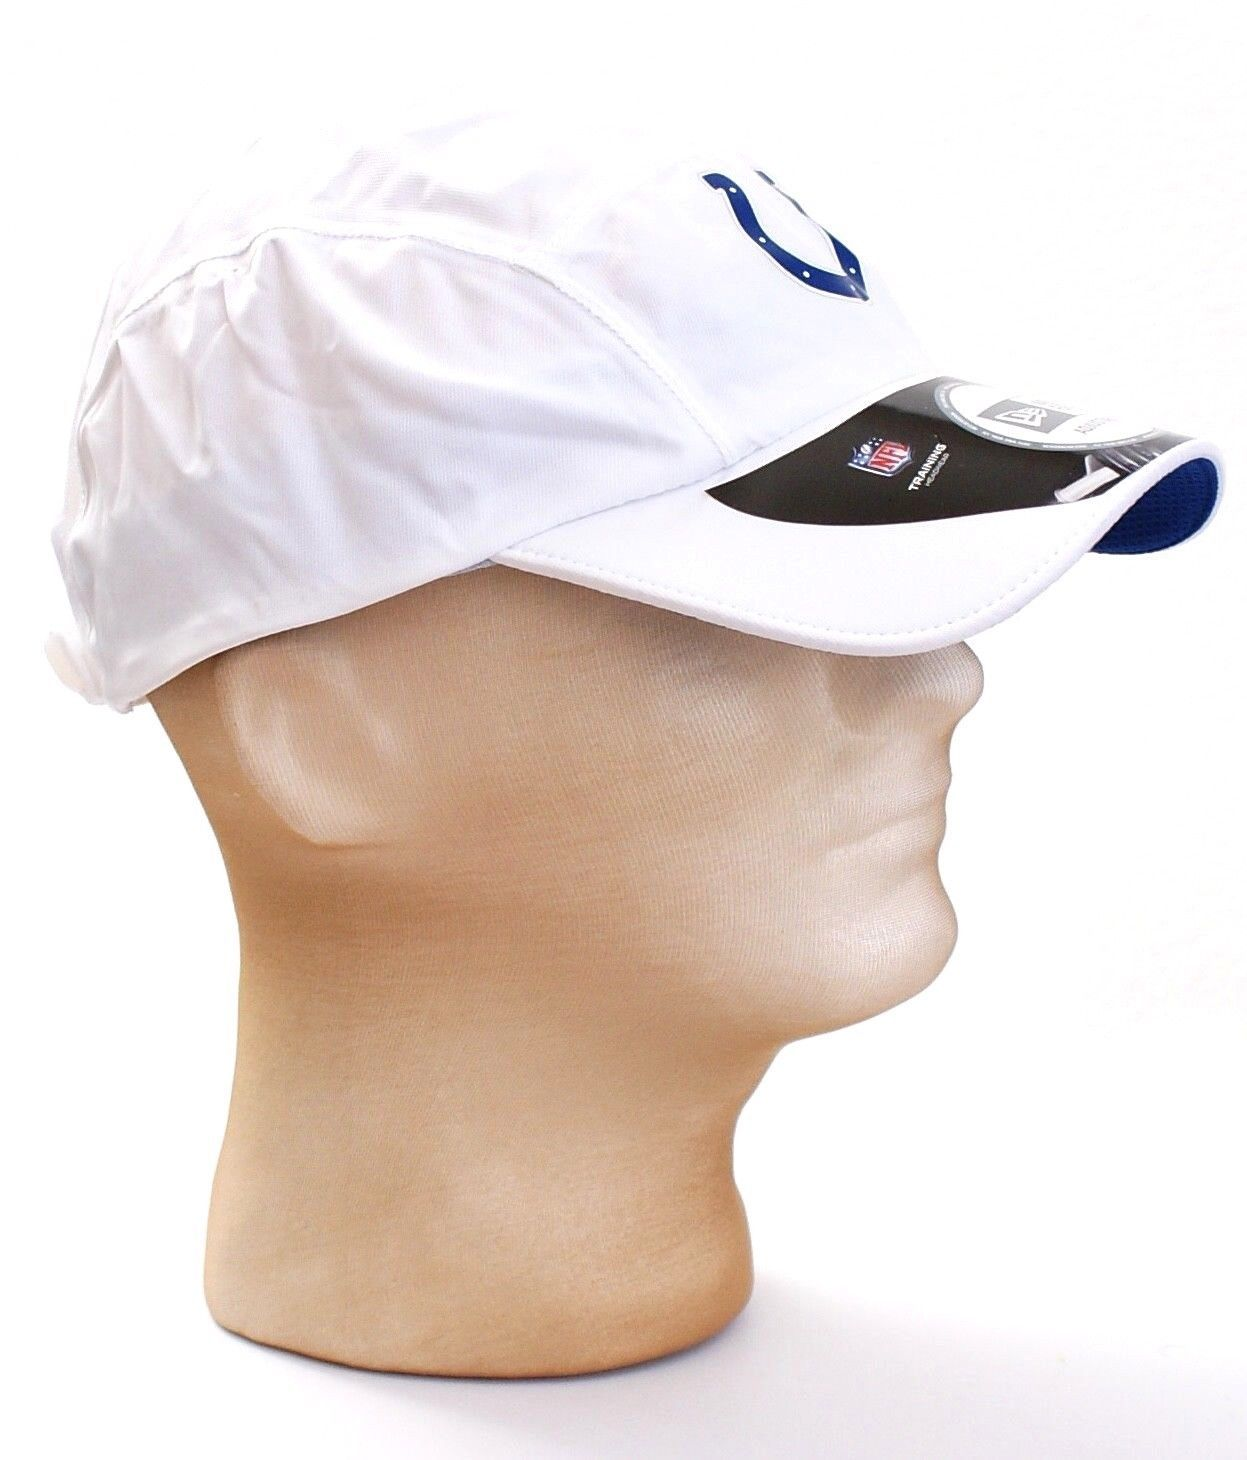 New Era NFL Indianapolis Colts White Training Running Cap Hat Adult One Size NWT